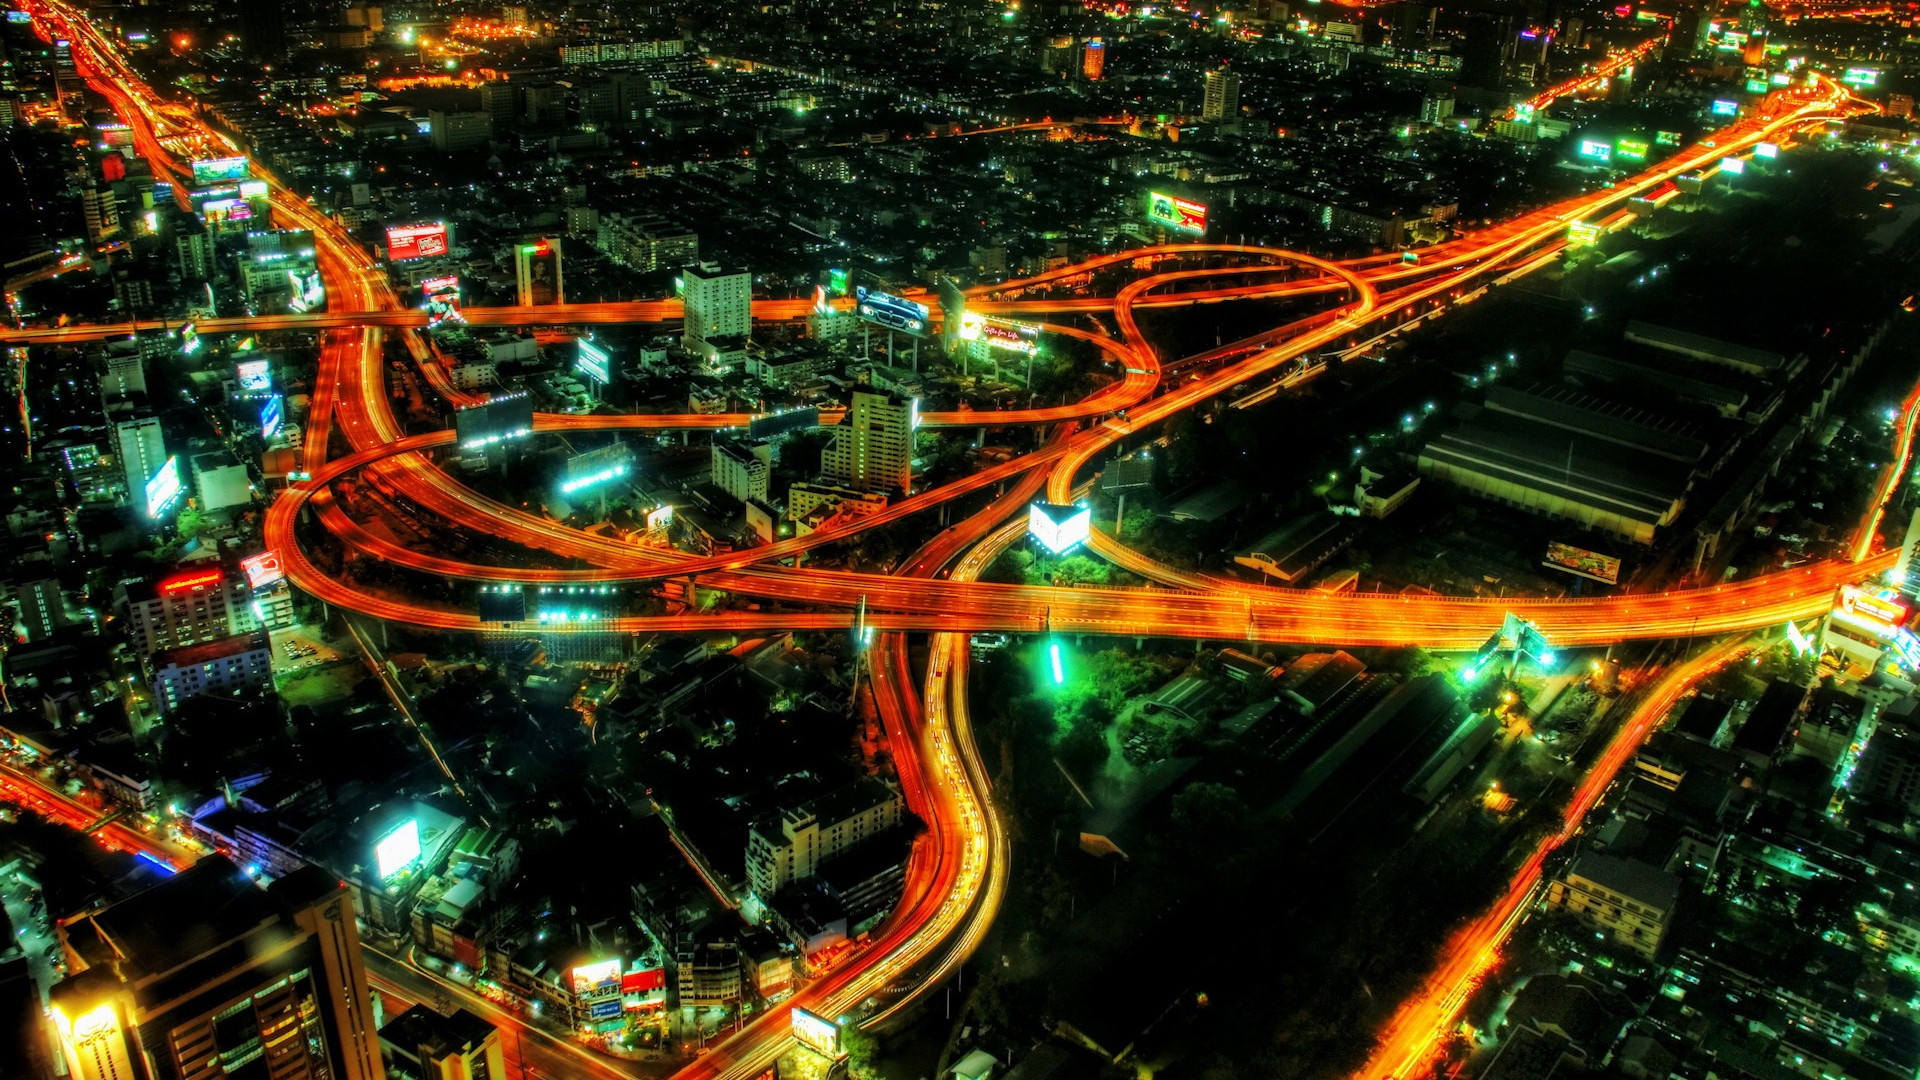 General 1920x1080 city Bangkok traffic highway light trails aerial view